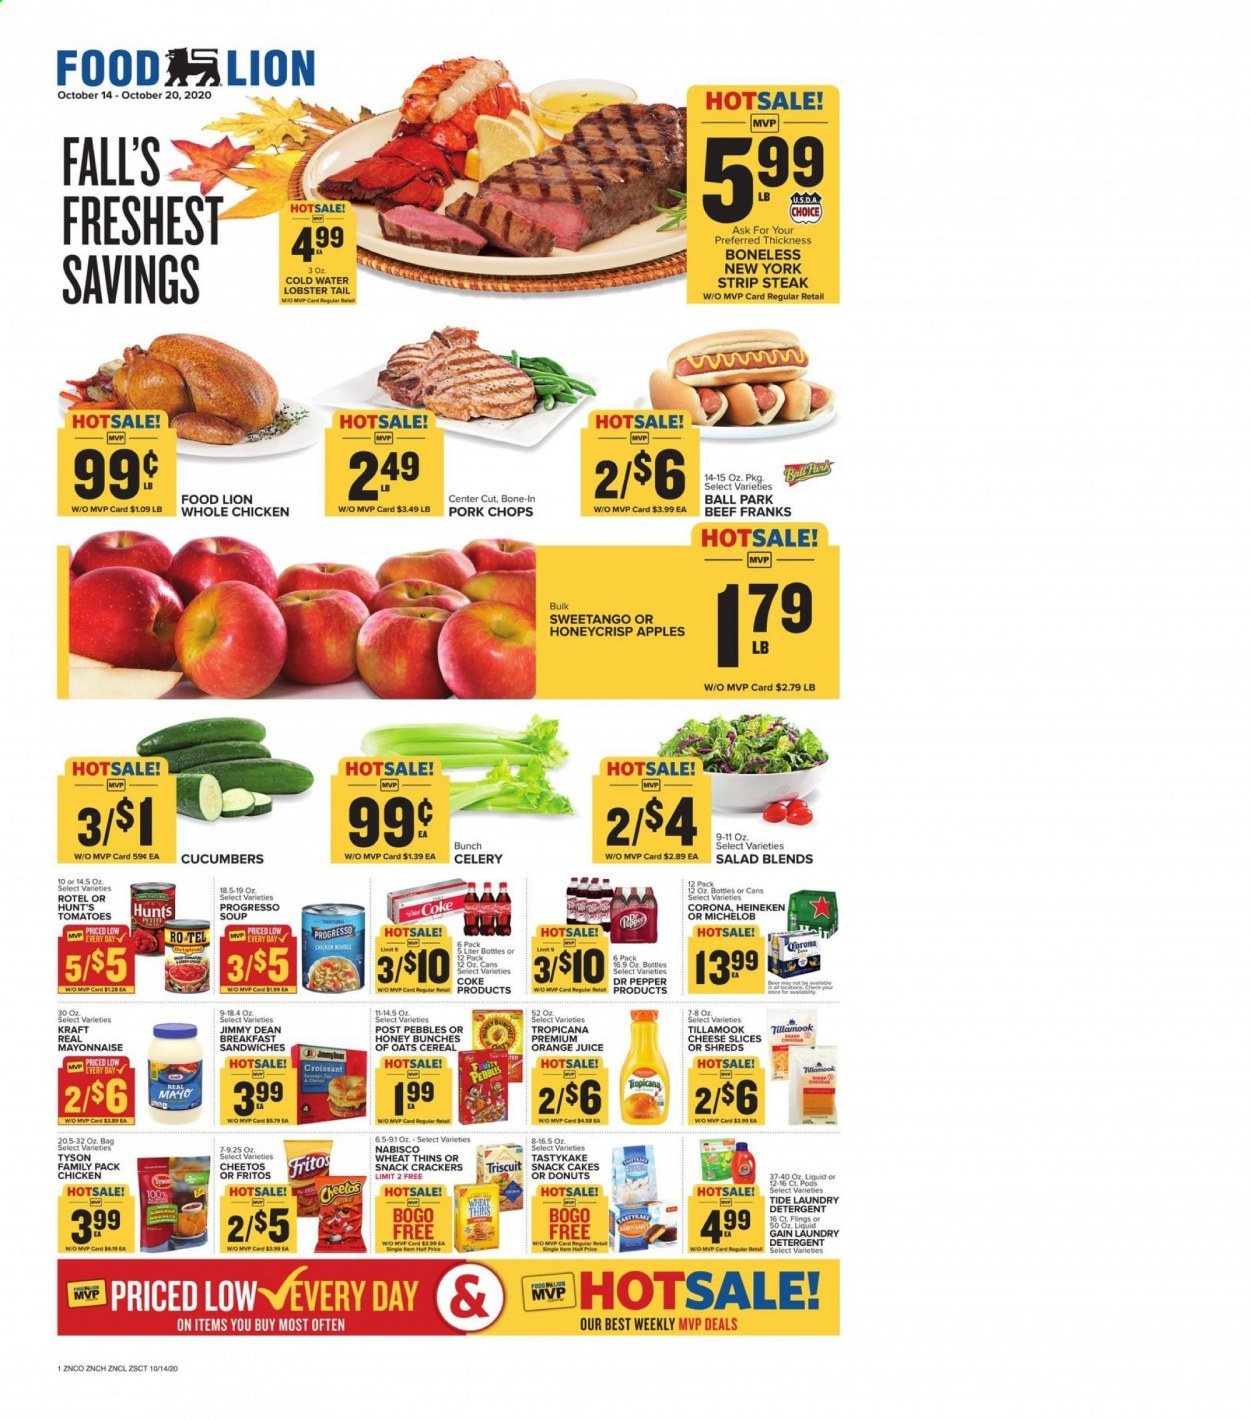 Food Lion Flyer - 10.14.2020 - 10.20.2020 - Sales products - apples, bag, beef meat, beer, celery, cereals, coca-cola, crackers, croissants, cucumbers, detergent, fritos, gain, lobster, mayonnaise, tide, tomatoes, whole chicken, honey, pork chops, pork meat, cheese slices, cheetos, chicken, noodle, oats, orange juice, orange, steak, cheese, juice, cake, soup, pepper, snack, donuts, cereal, salad, ball, corona, michelob, heineken, liquid, bunches, laundry detergent, lobster tail, family pack, apple, tomato, donut. Page 1.